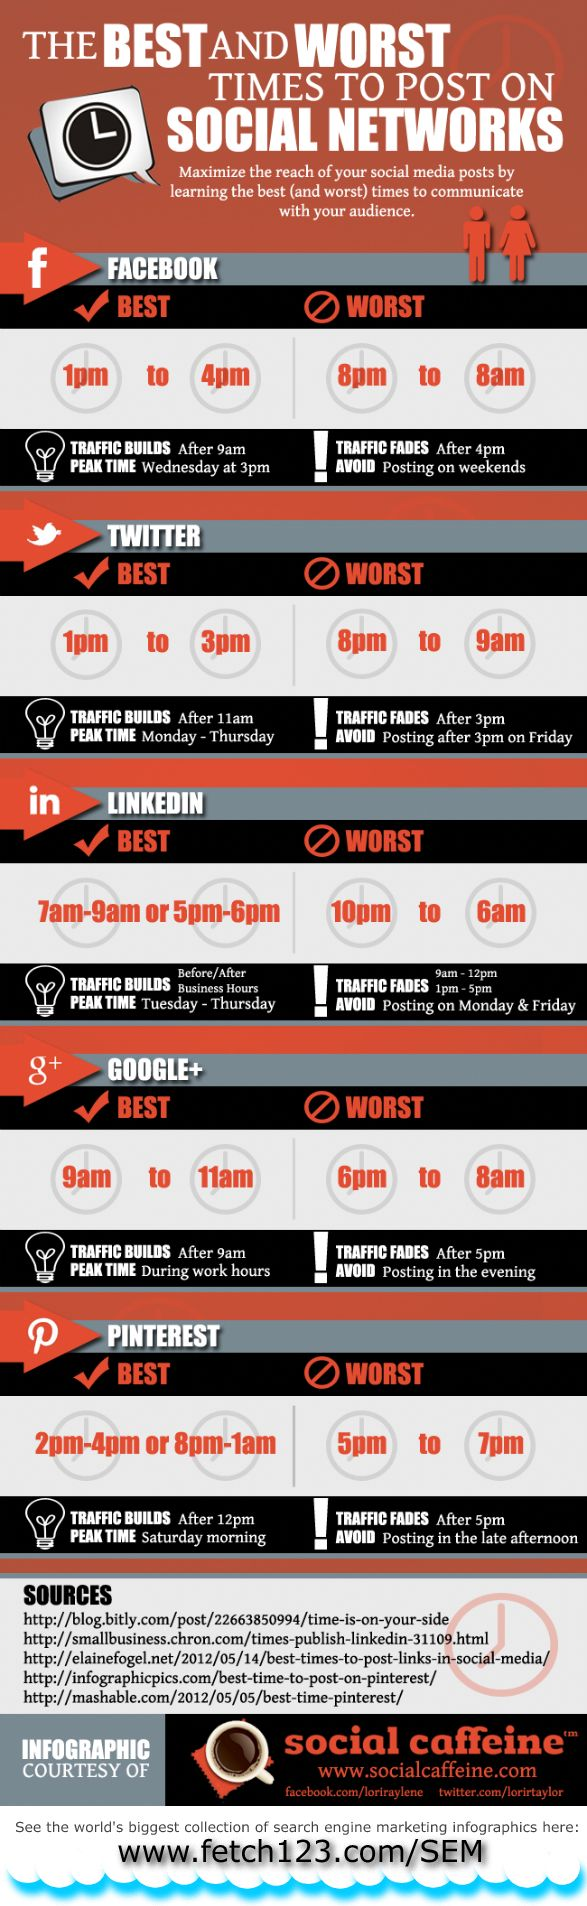 The Best and Worst Times to Post on Social Networks Infographic .... NOTE: This was NOT created by Ogilvy. Results vary depending on audience. Social@Ogilvy's online properties have found different results from what is shown.